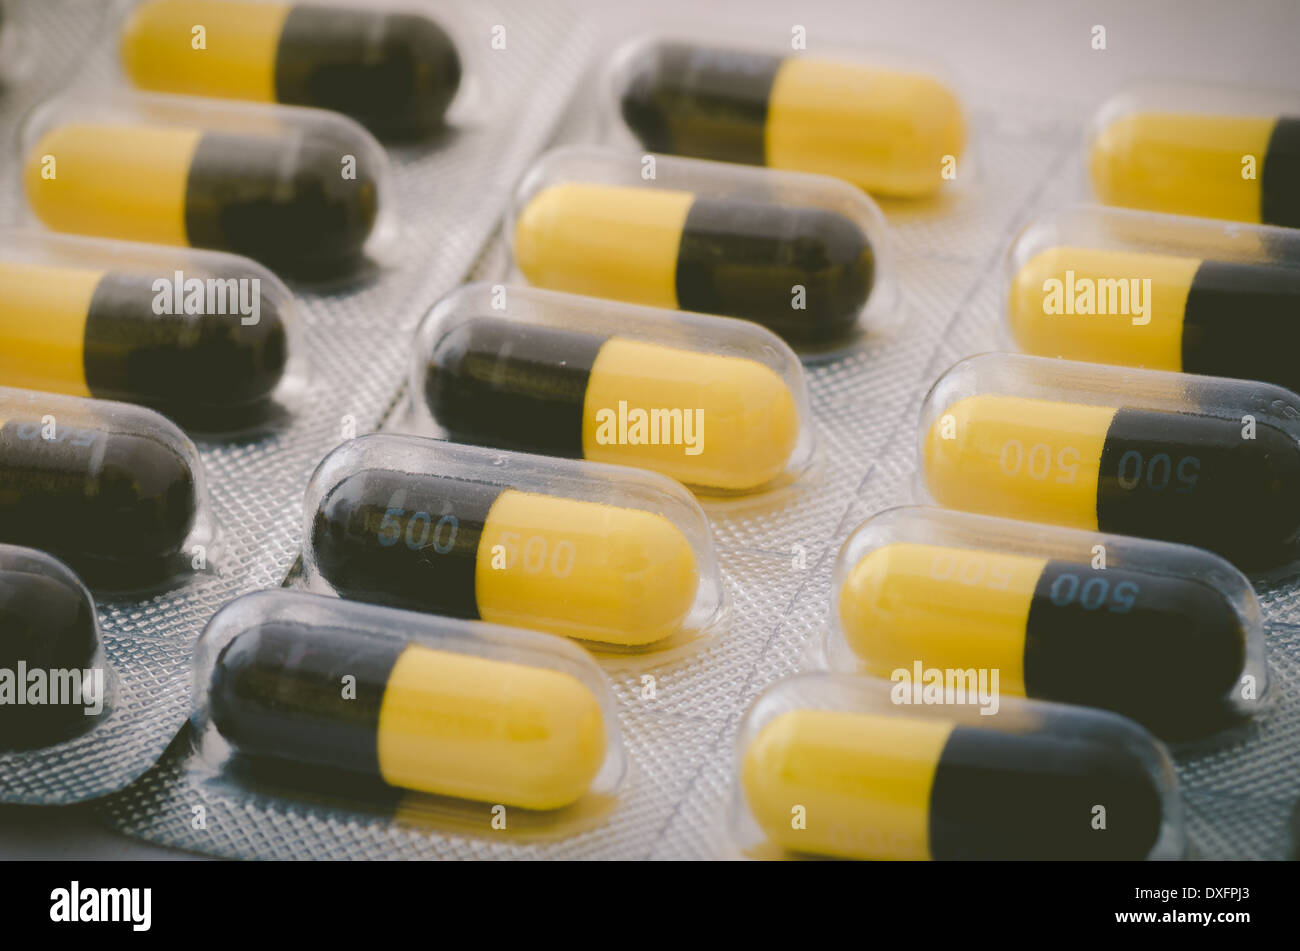 Black and yellow capsule pack medicine heath concept - Stock Image